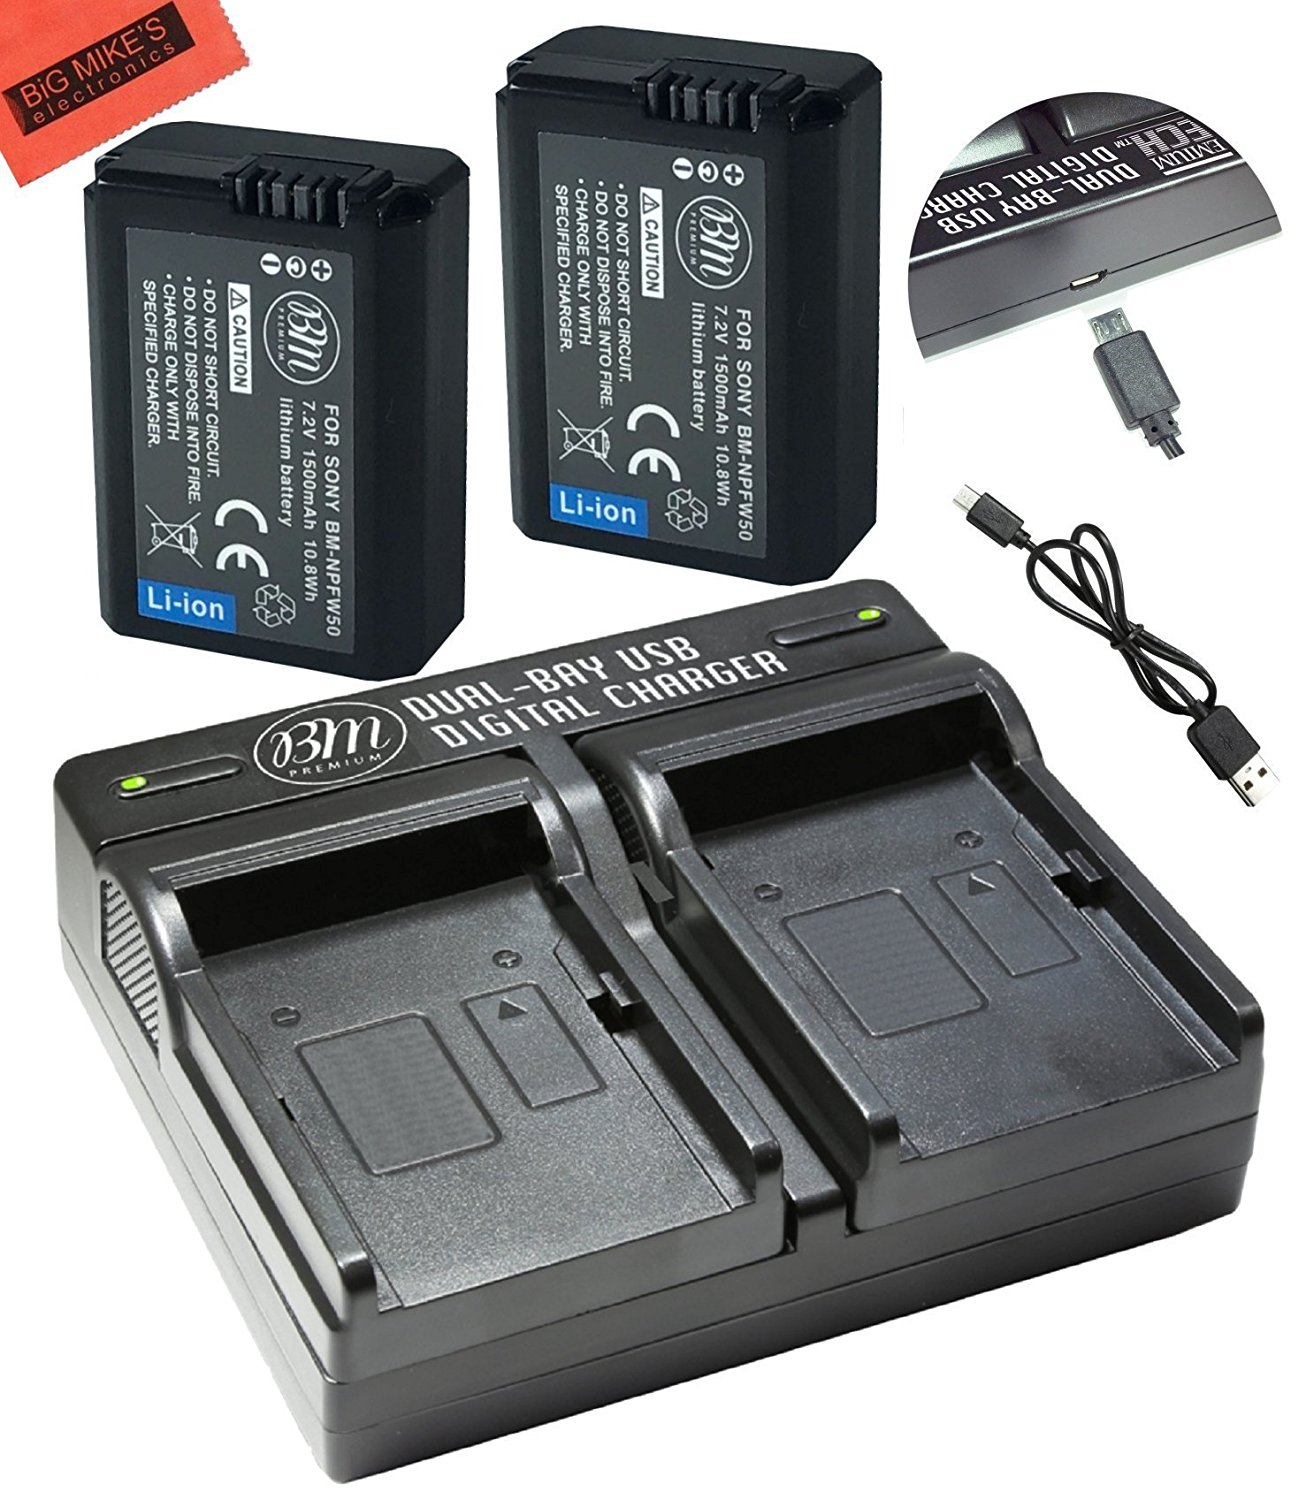 Sony Batteries - Gifts for Photographers